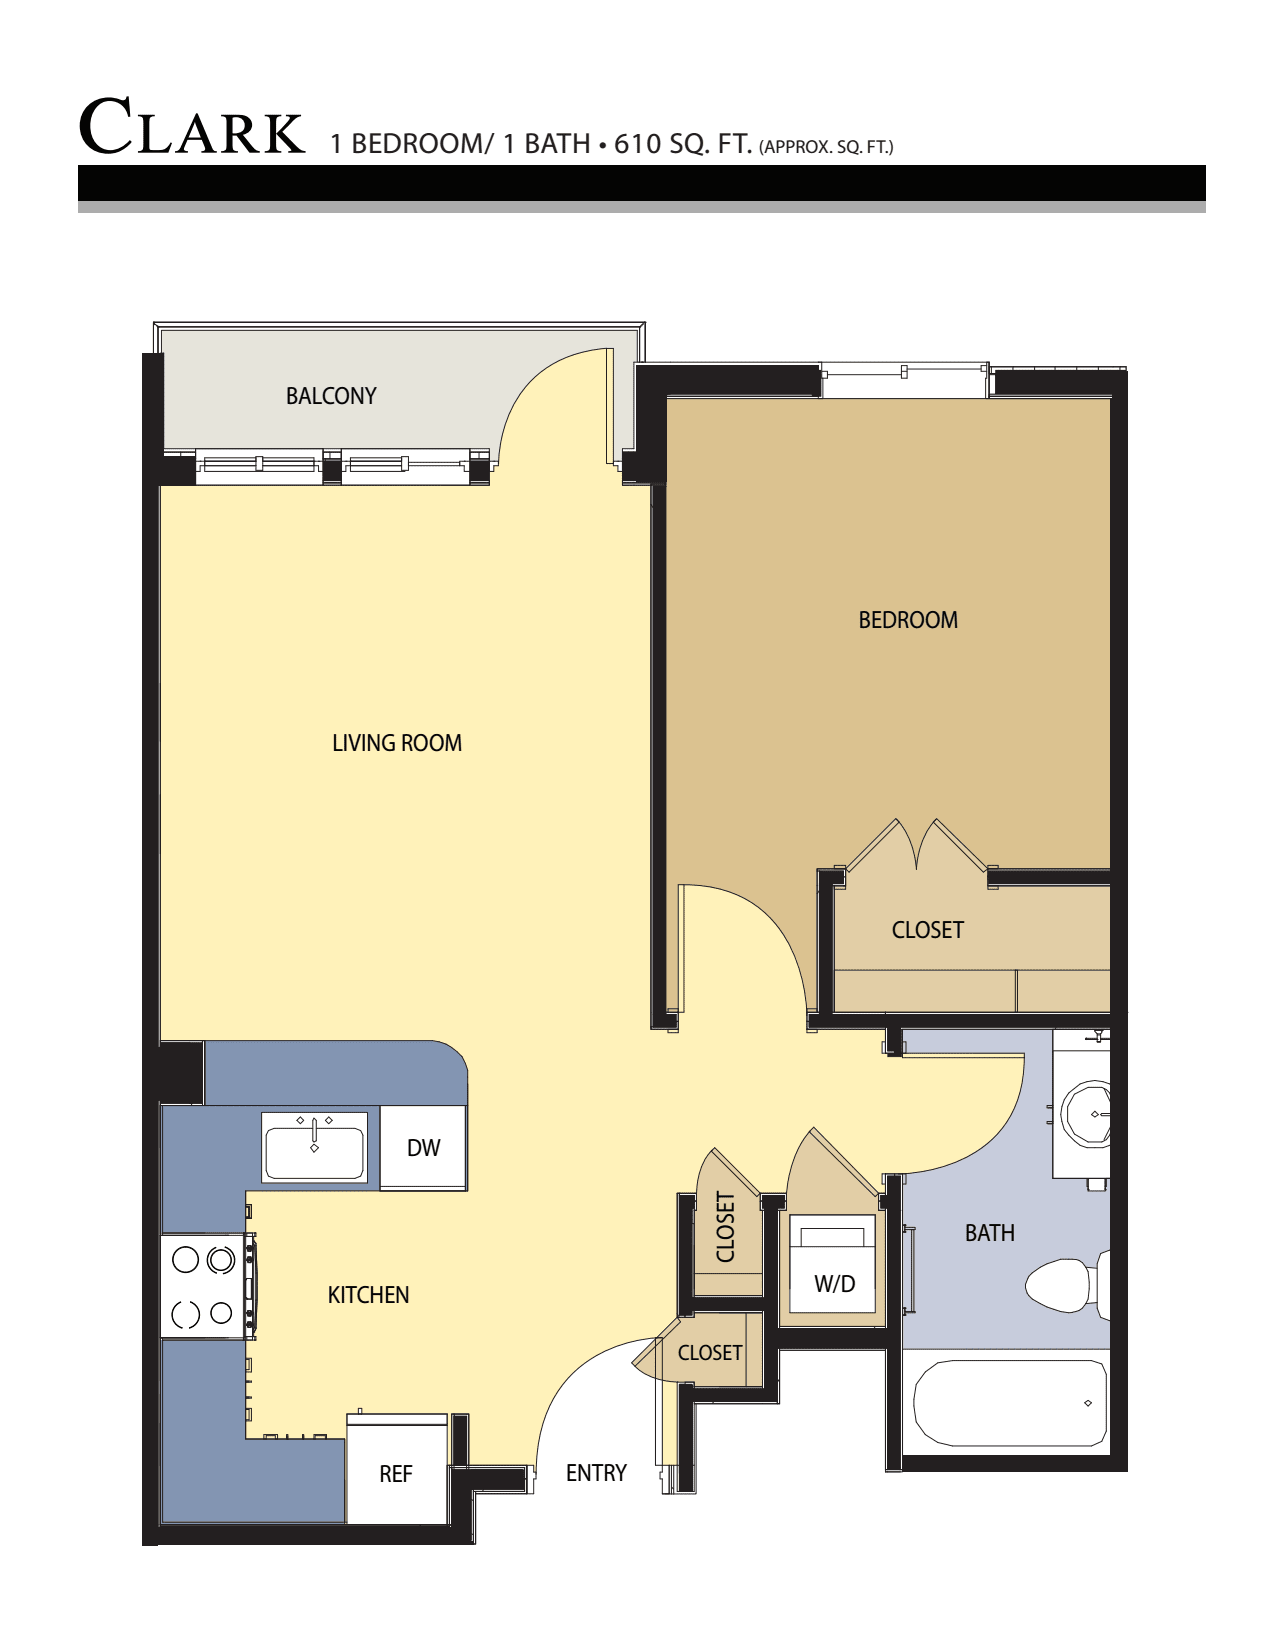 Clark floor plan - 1 Bed / 1 Bath (610 Sq Ft)